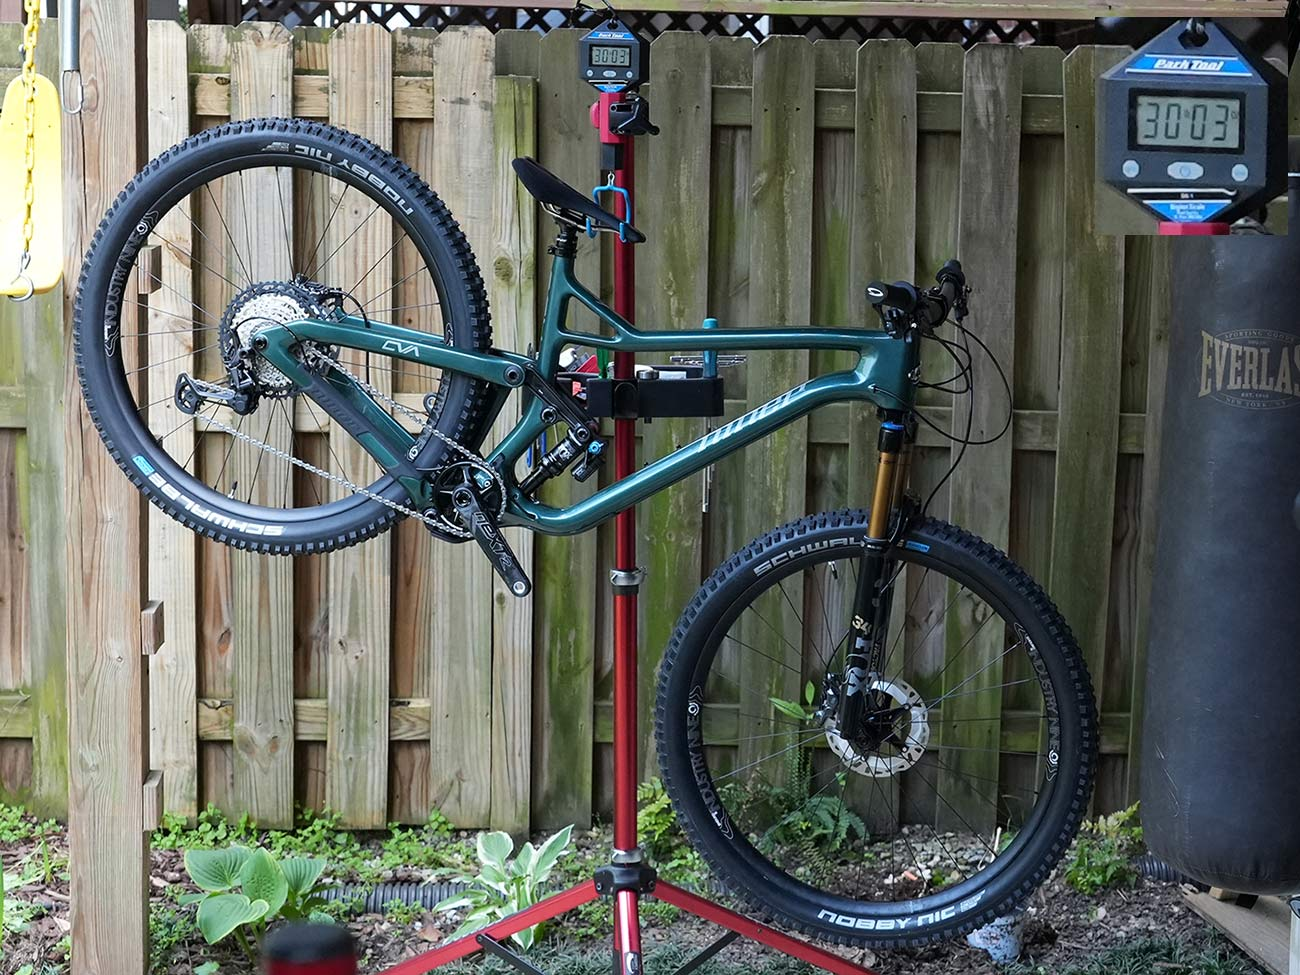 niner jet 9 rdo actual weight with incorrect fork and shock spec